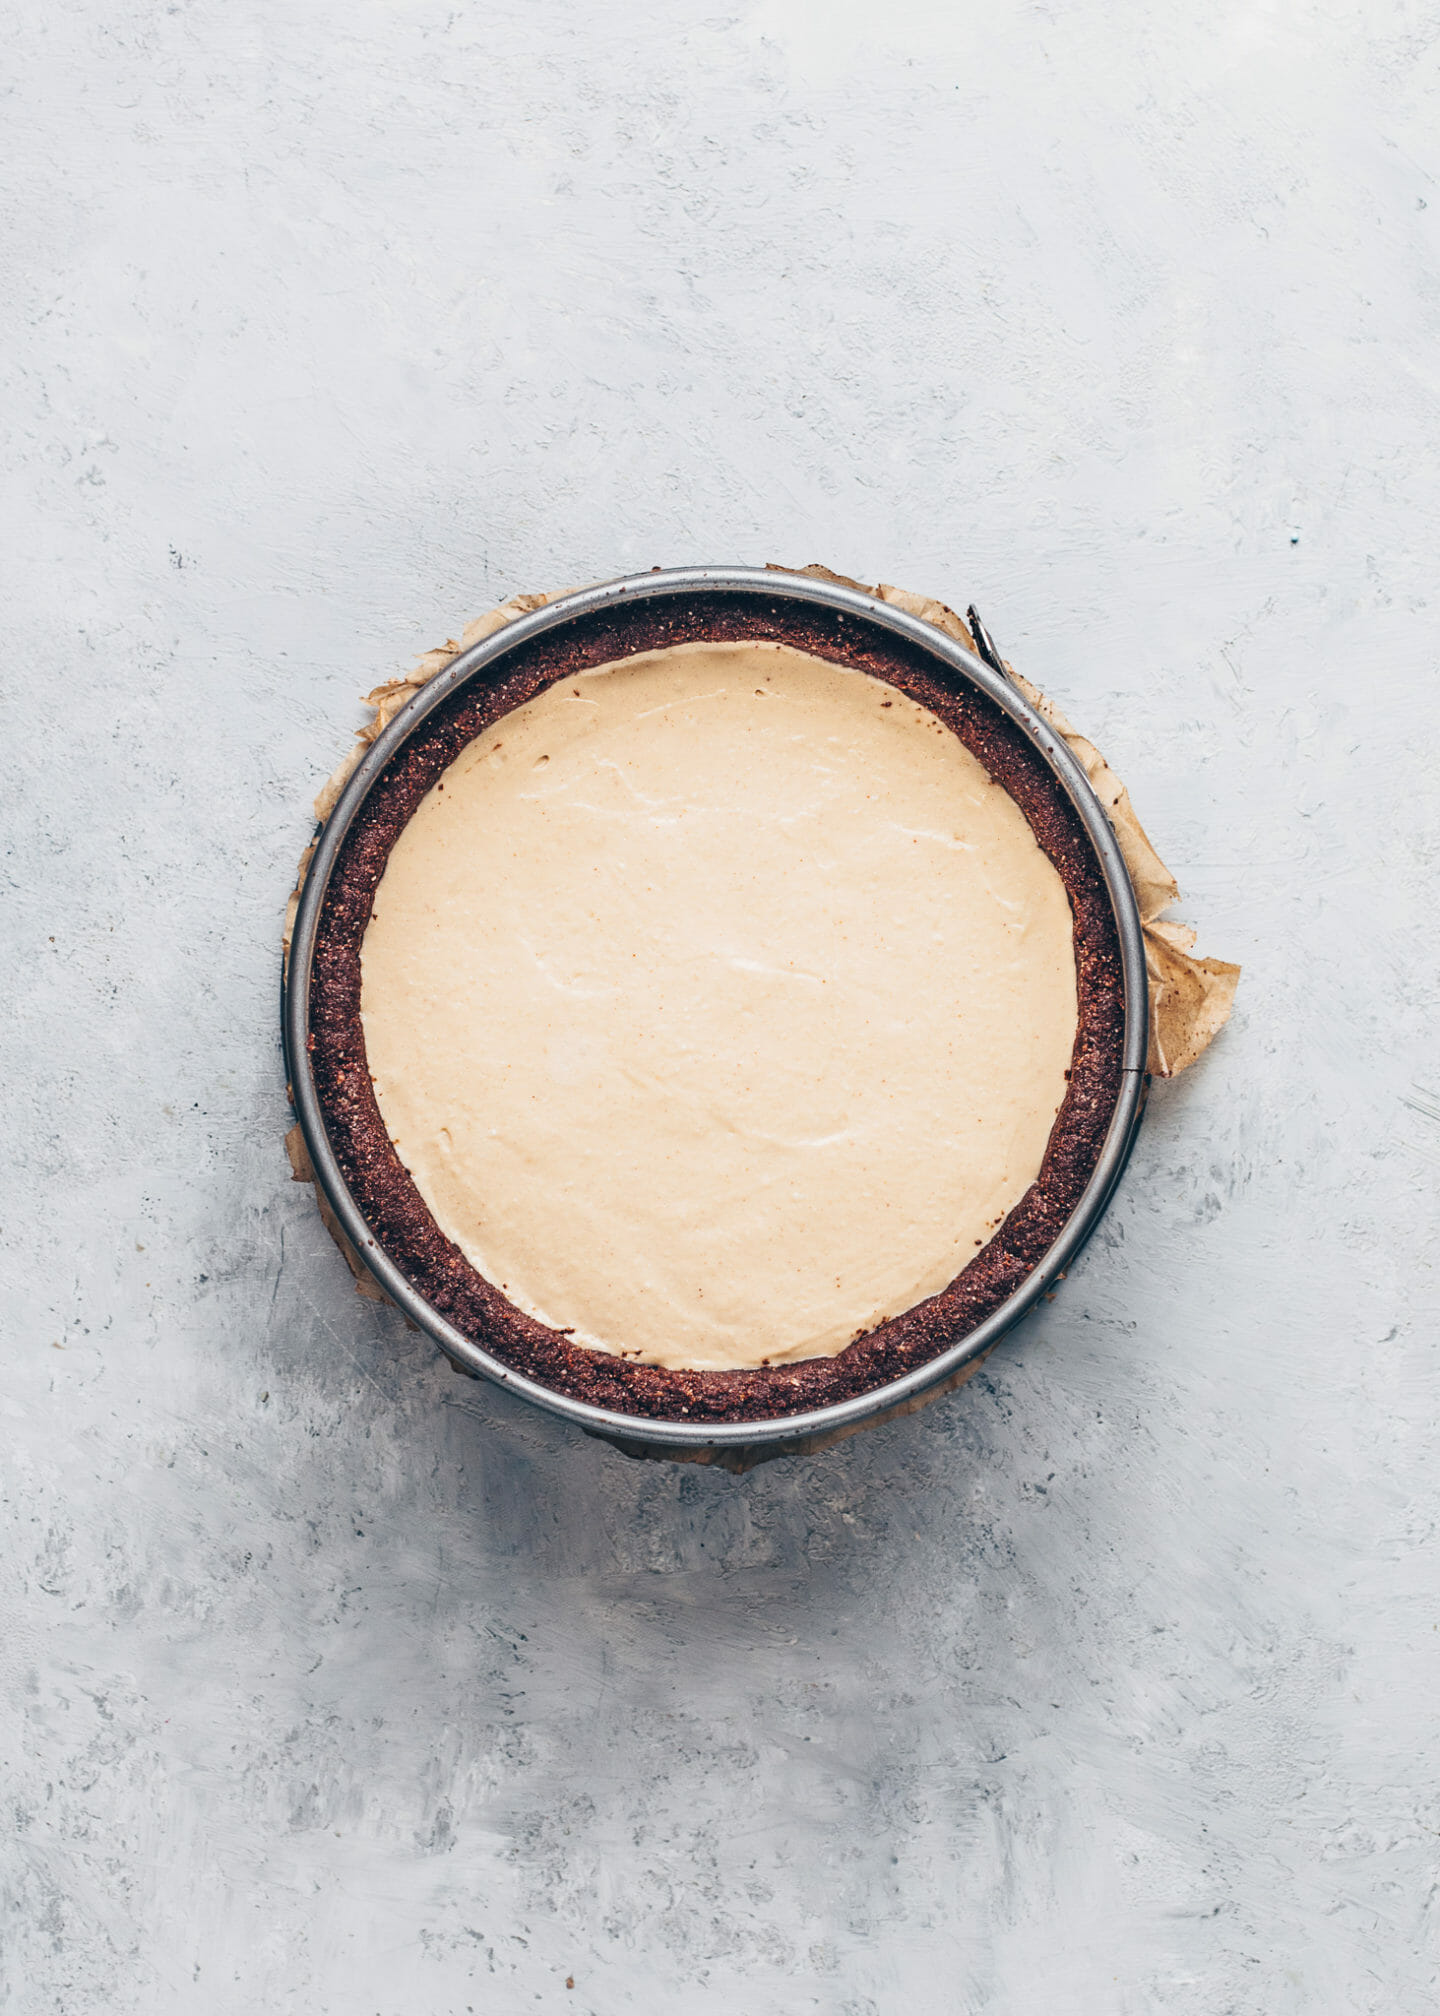 Peanut Butter Mousse Pie with gluten-free no-bake Chocolate Crust